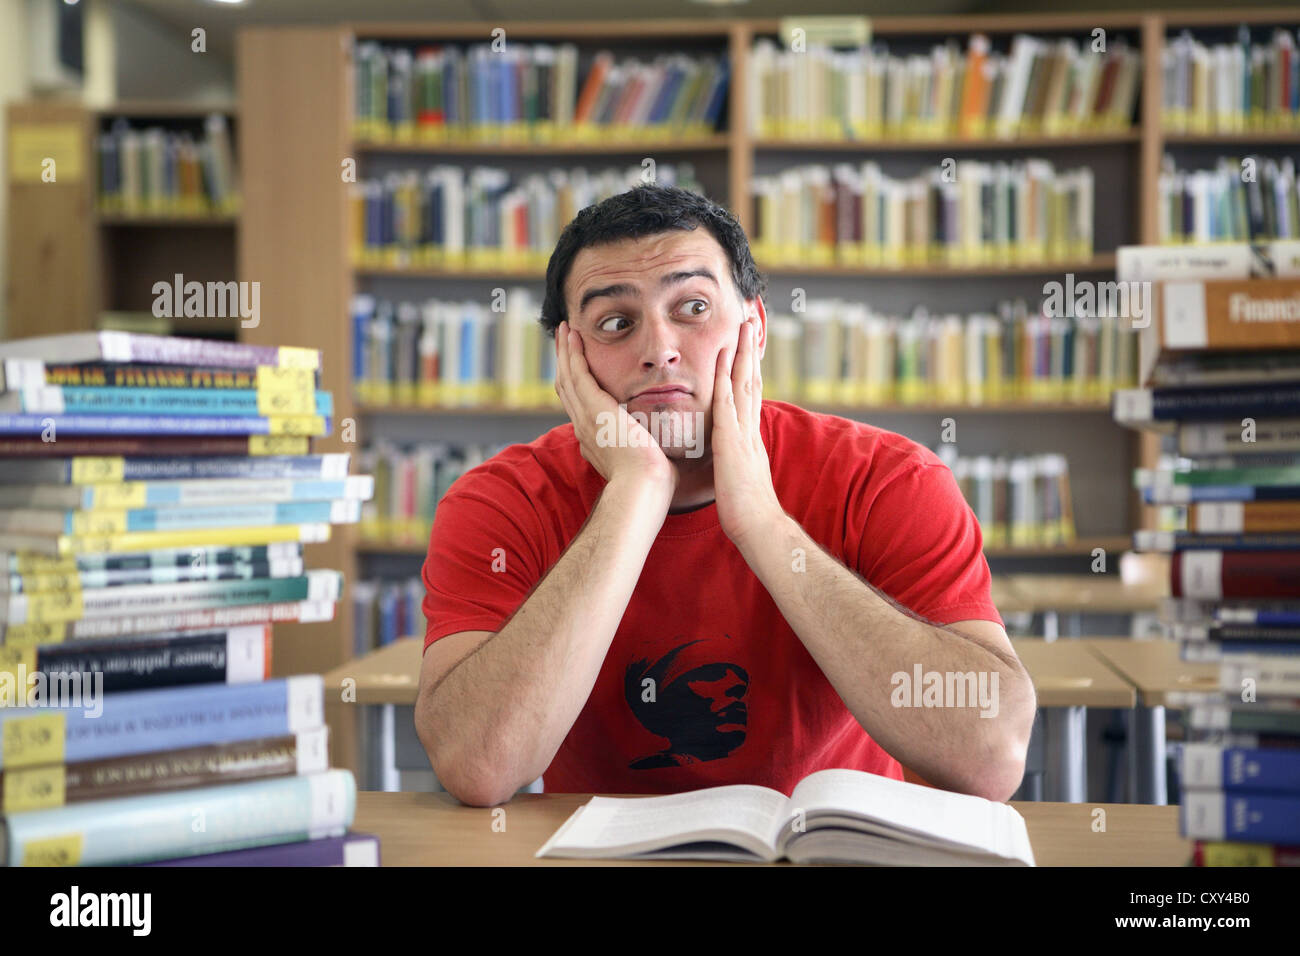 Student looking thoughtful in a university library - Stock Image